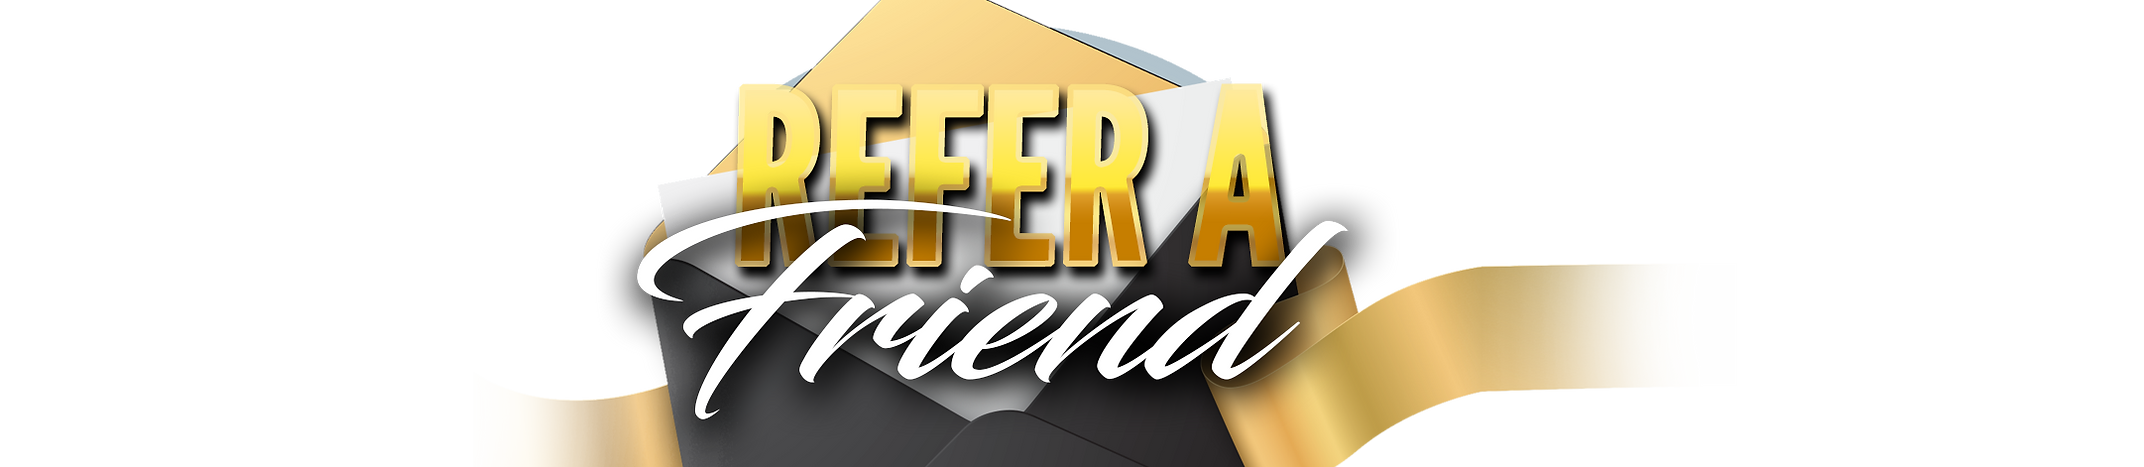 Refer a friend header.png